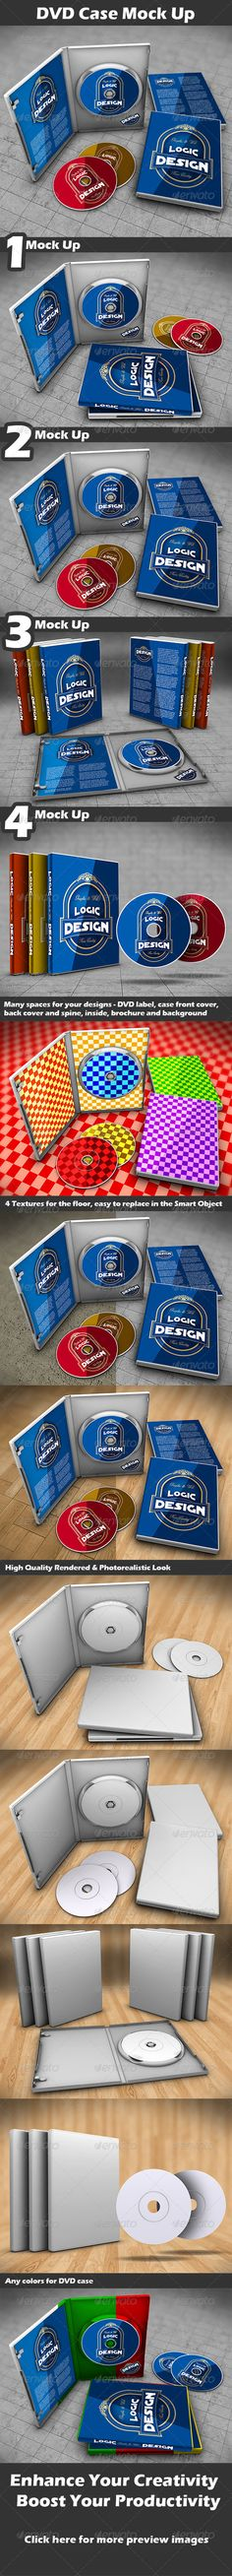 DVD Case Mock Up  #GraphicRiver        DVD Case Mock Up Description  A professional DVD Case Mock Up. You can easily change the SmartObject labels. Shadows and light reflections are done automatically. Less than a minute to create! Instructions included. Using the smart objects you can make your own design for any parts (DVD label, cases cover front, cover back and spine, inside cases, brochure and background).   4 different images  All objects are individualized, on separate layers  Images…